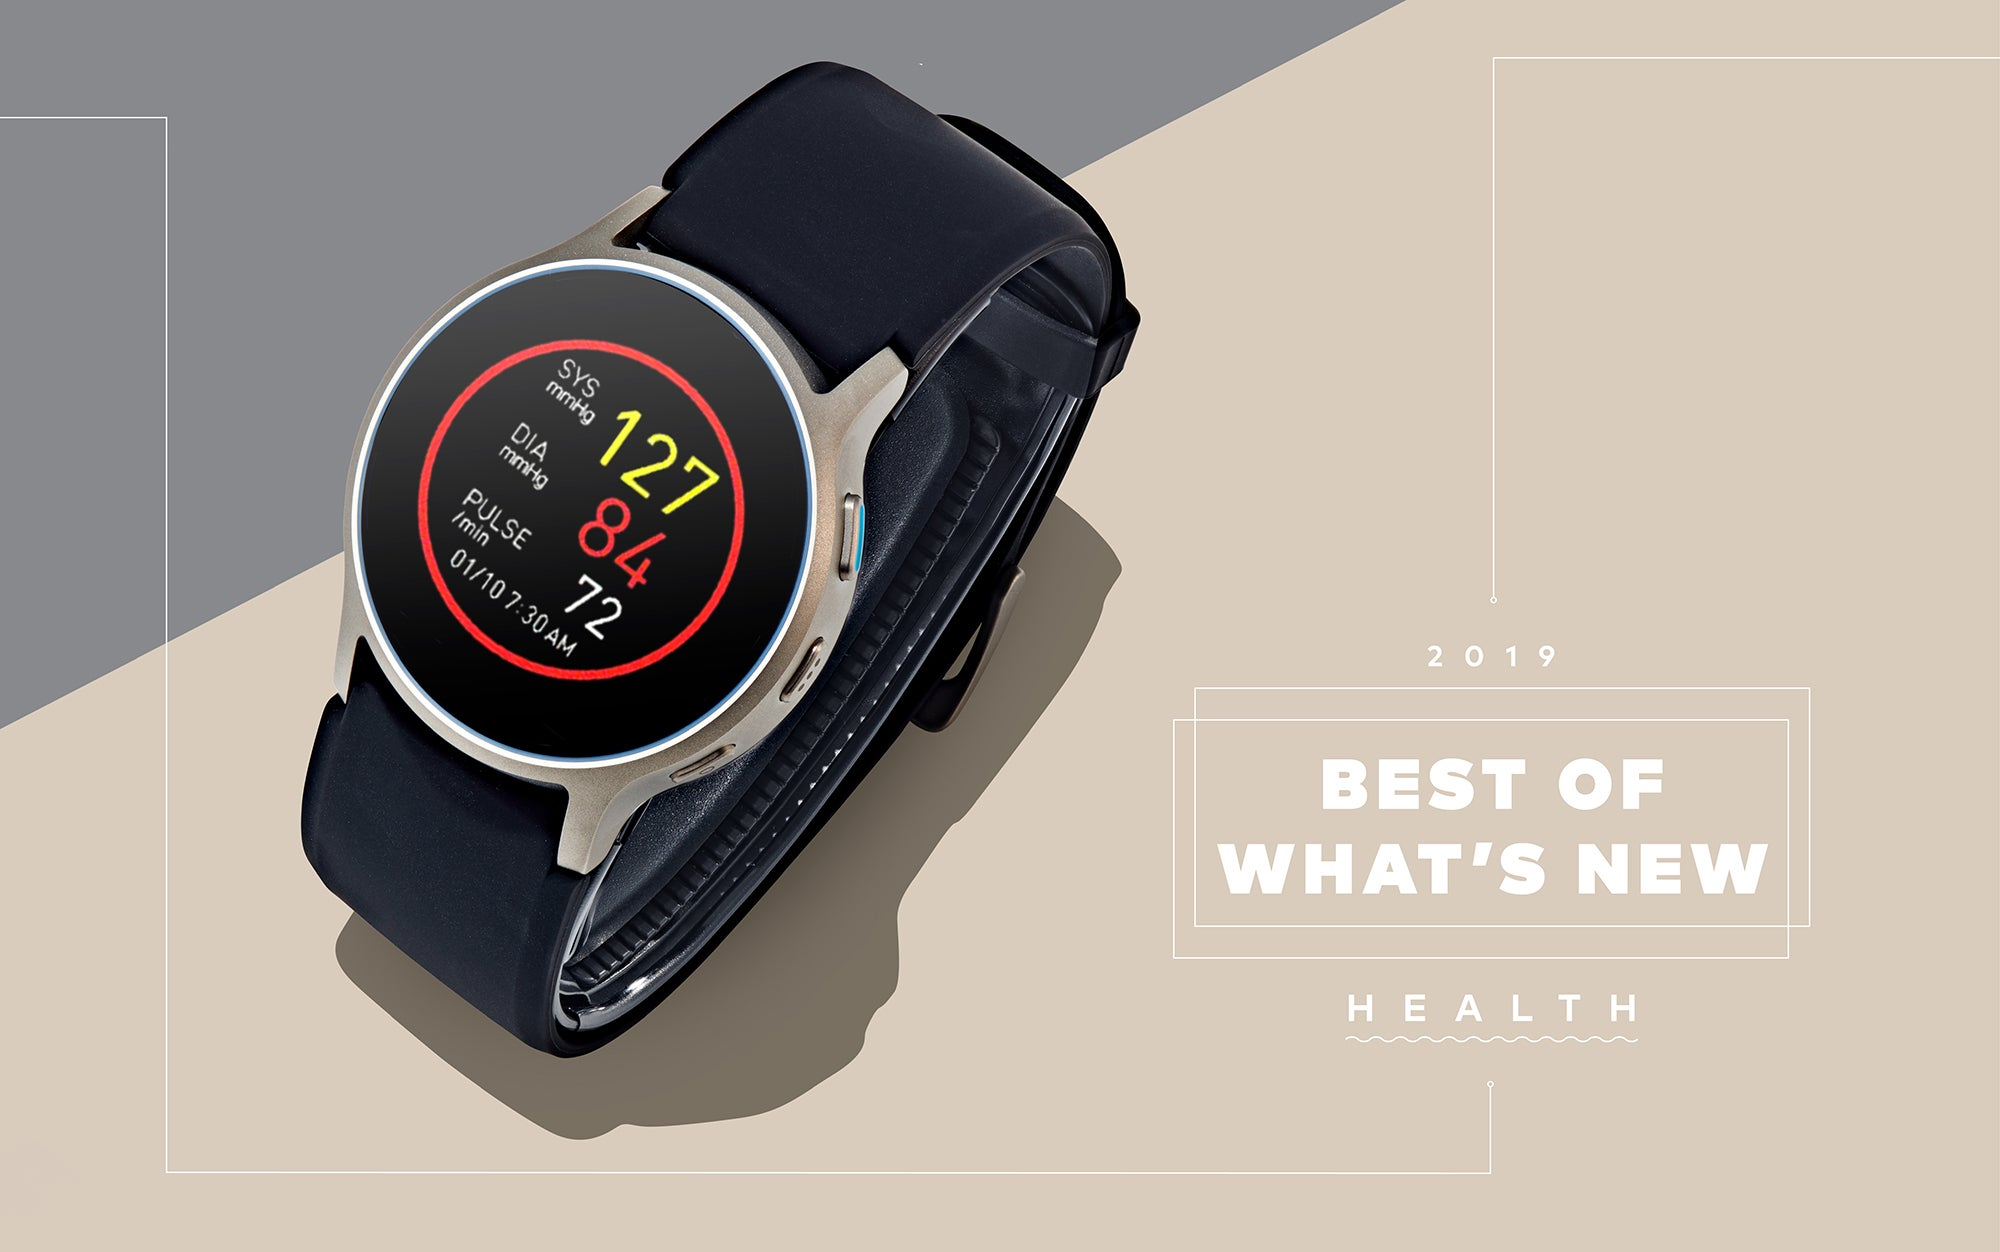 The 10 best health products and innovations of the year